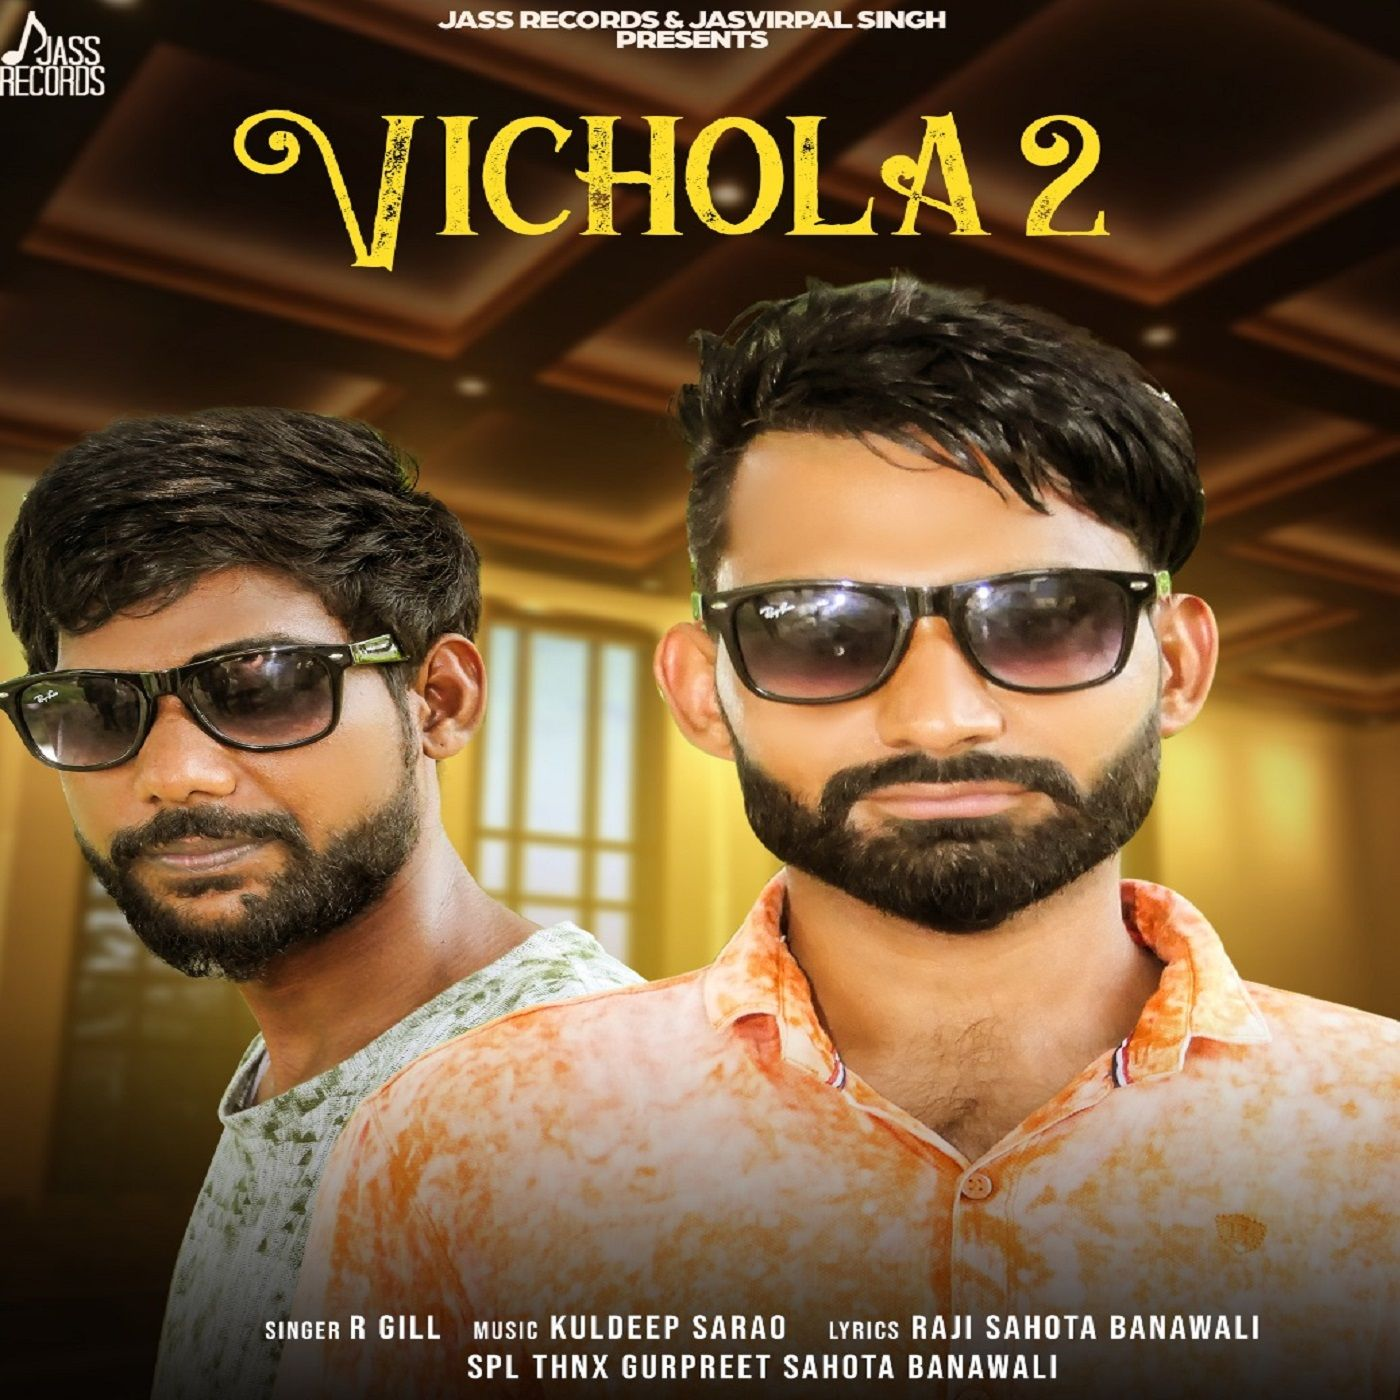 Vichola 2 By R Gill Songs Singer Mp3 Song